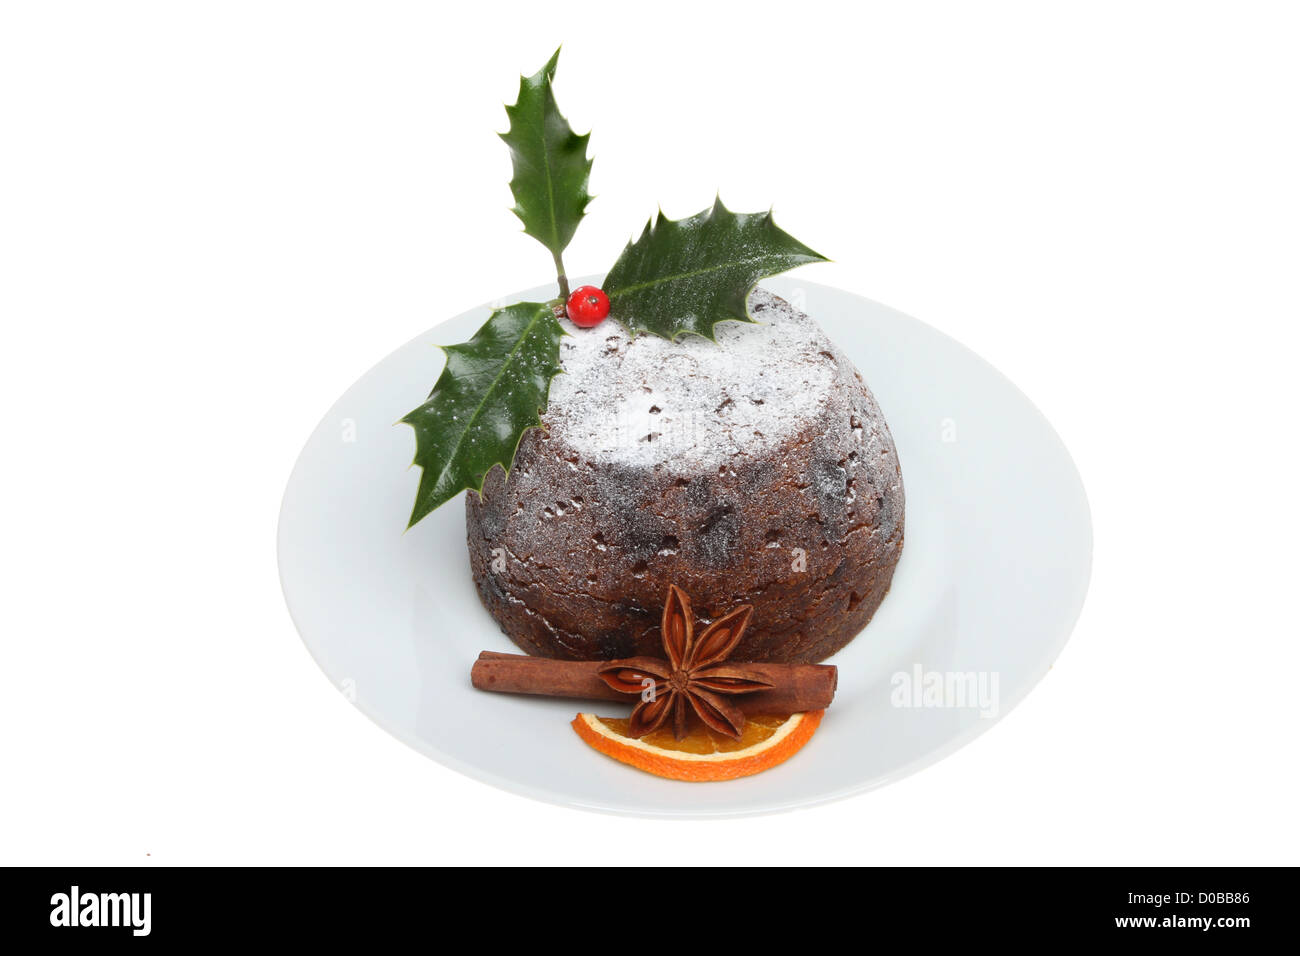 Christmas pudding on a plate decorated with holly and spices isolated against white - Stock Image